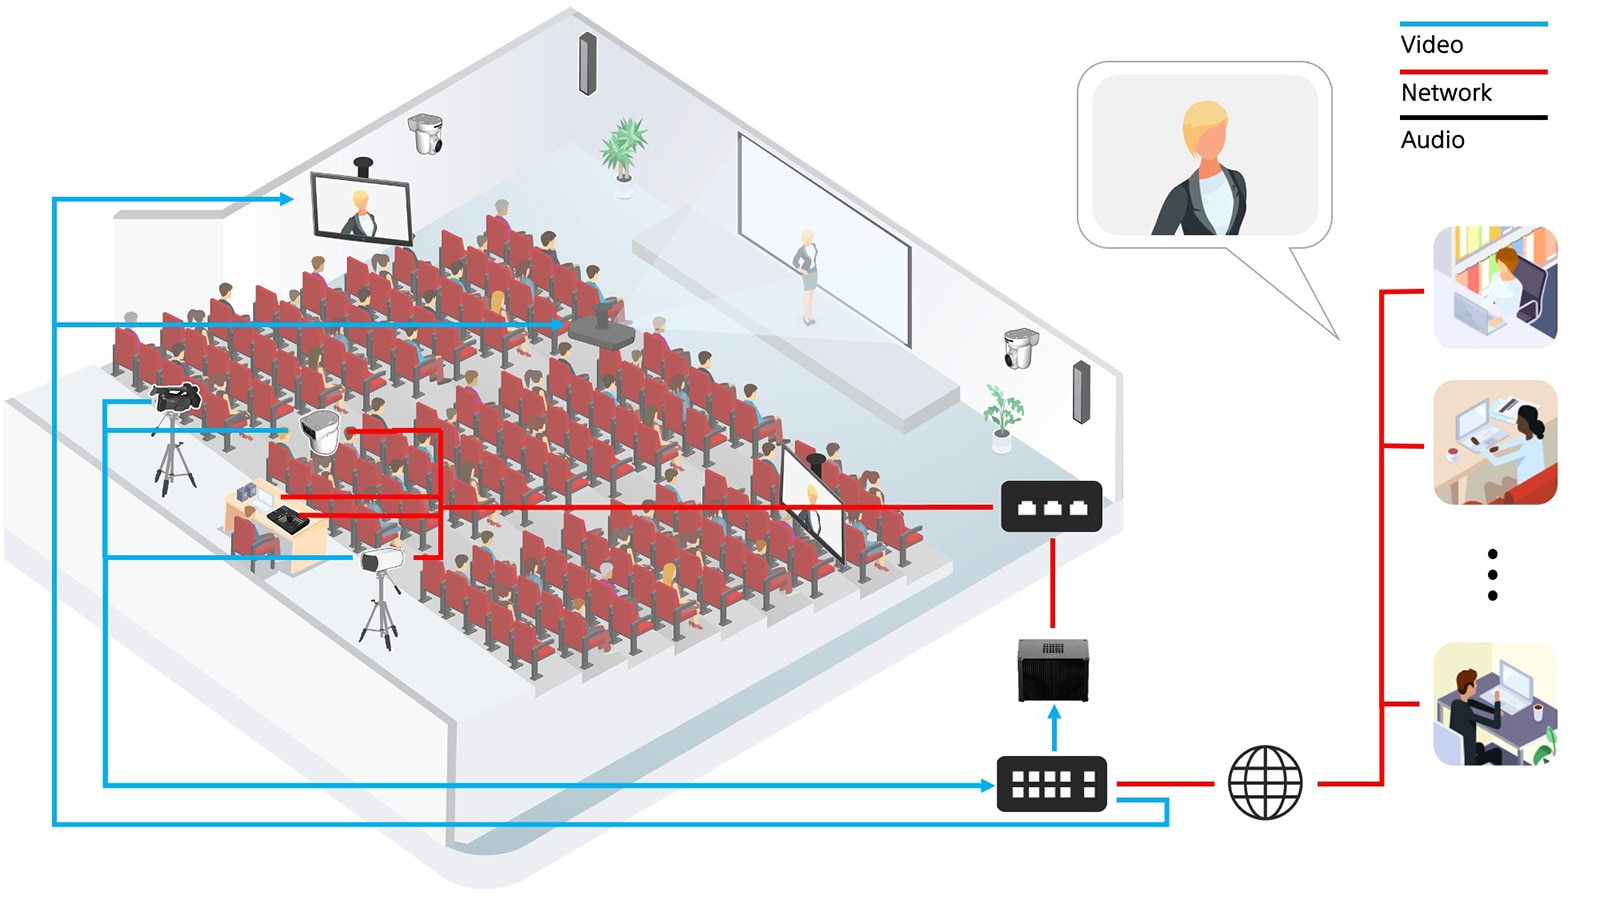 Infographic diagram of an auditorium using various Sony products to stream professional quality video live